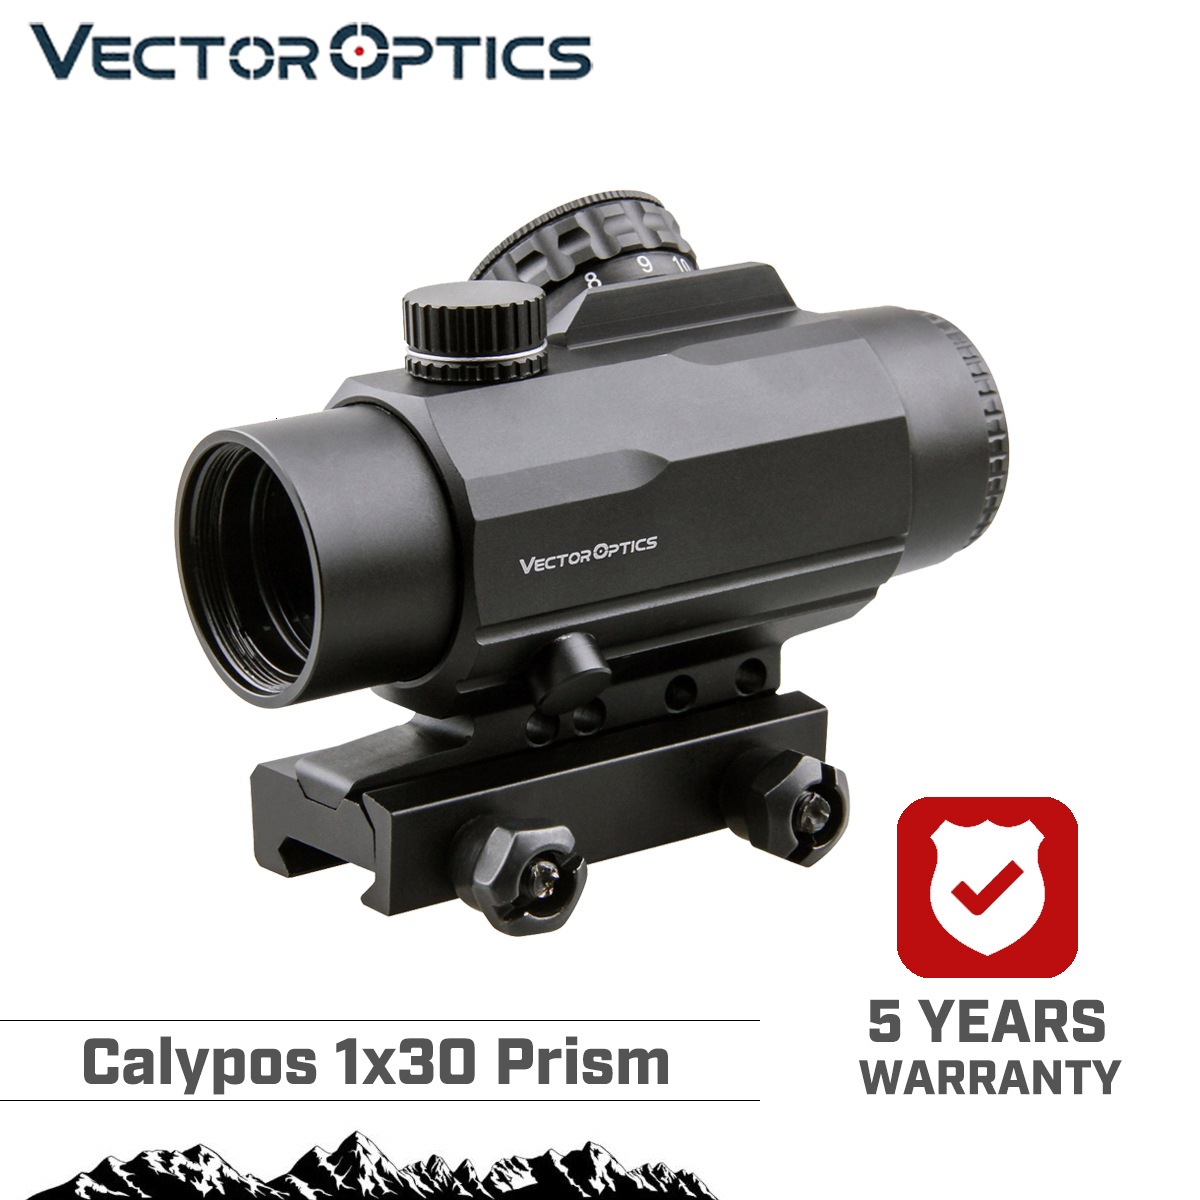 Vector Optics Calypos 1x30 Prism Riflescope CQB Style Fits AR15 M4 Rifle Scope Tactical CQ Reticle For Fast Targeting Shooting